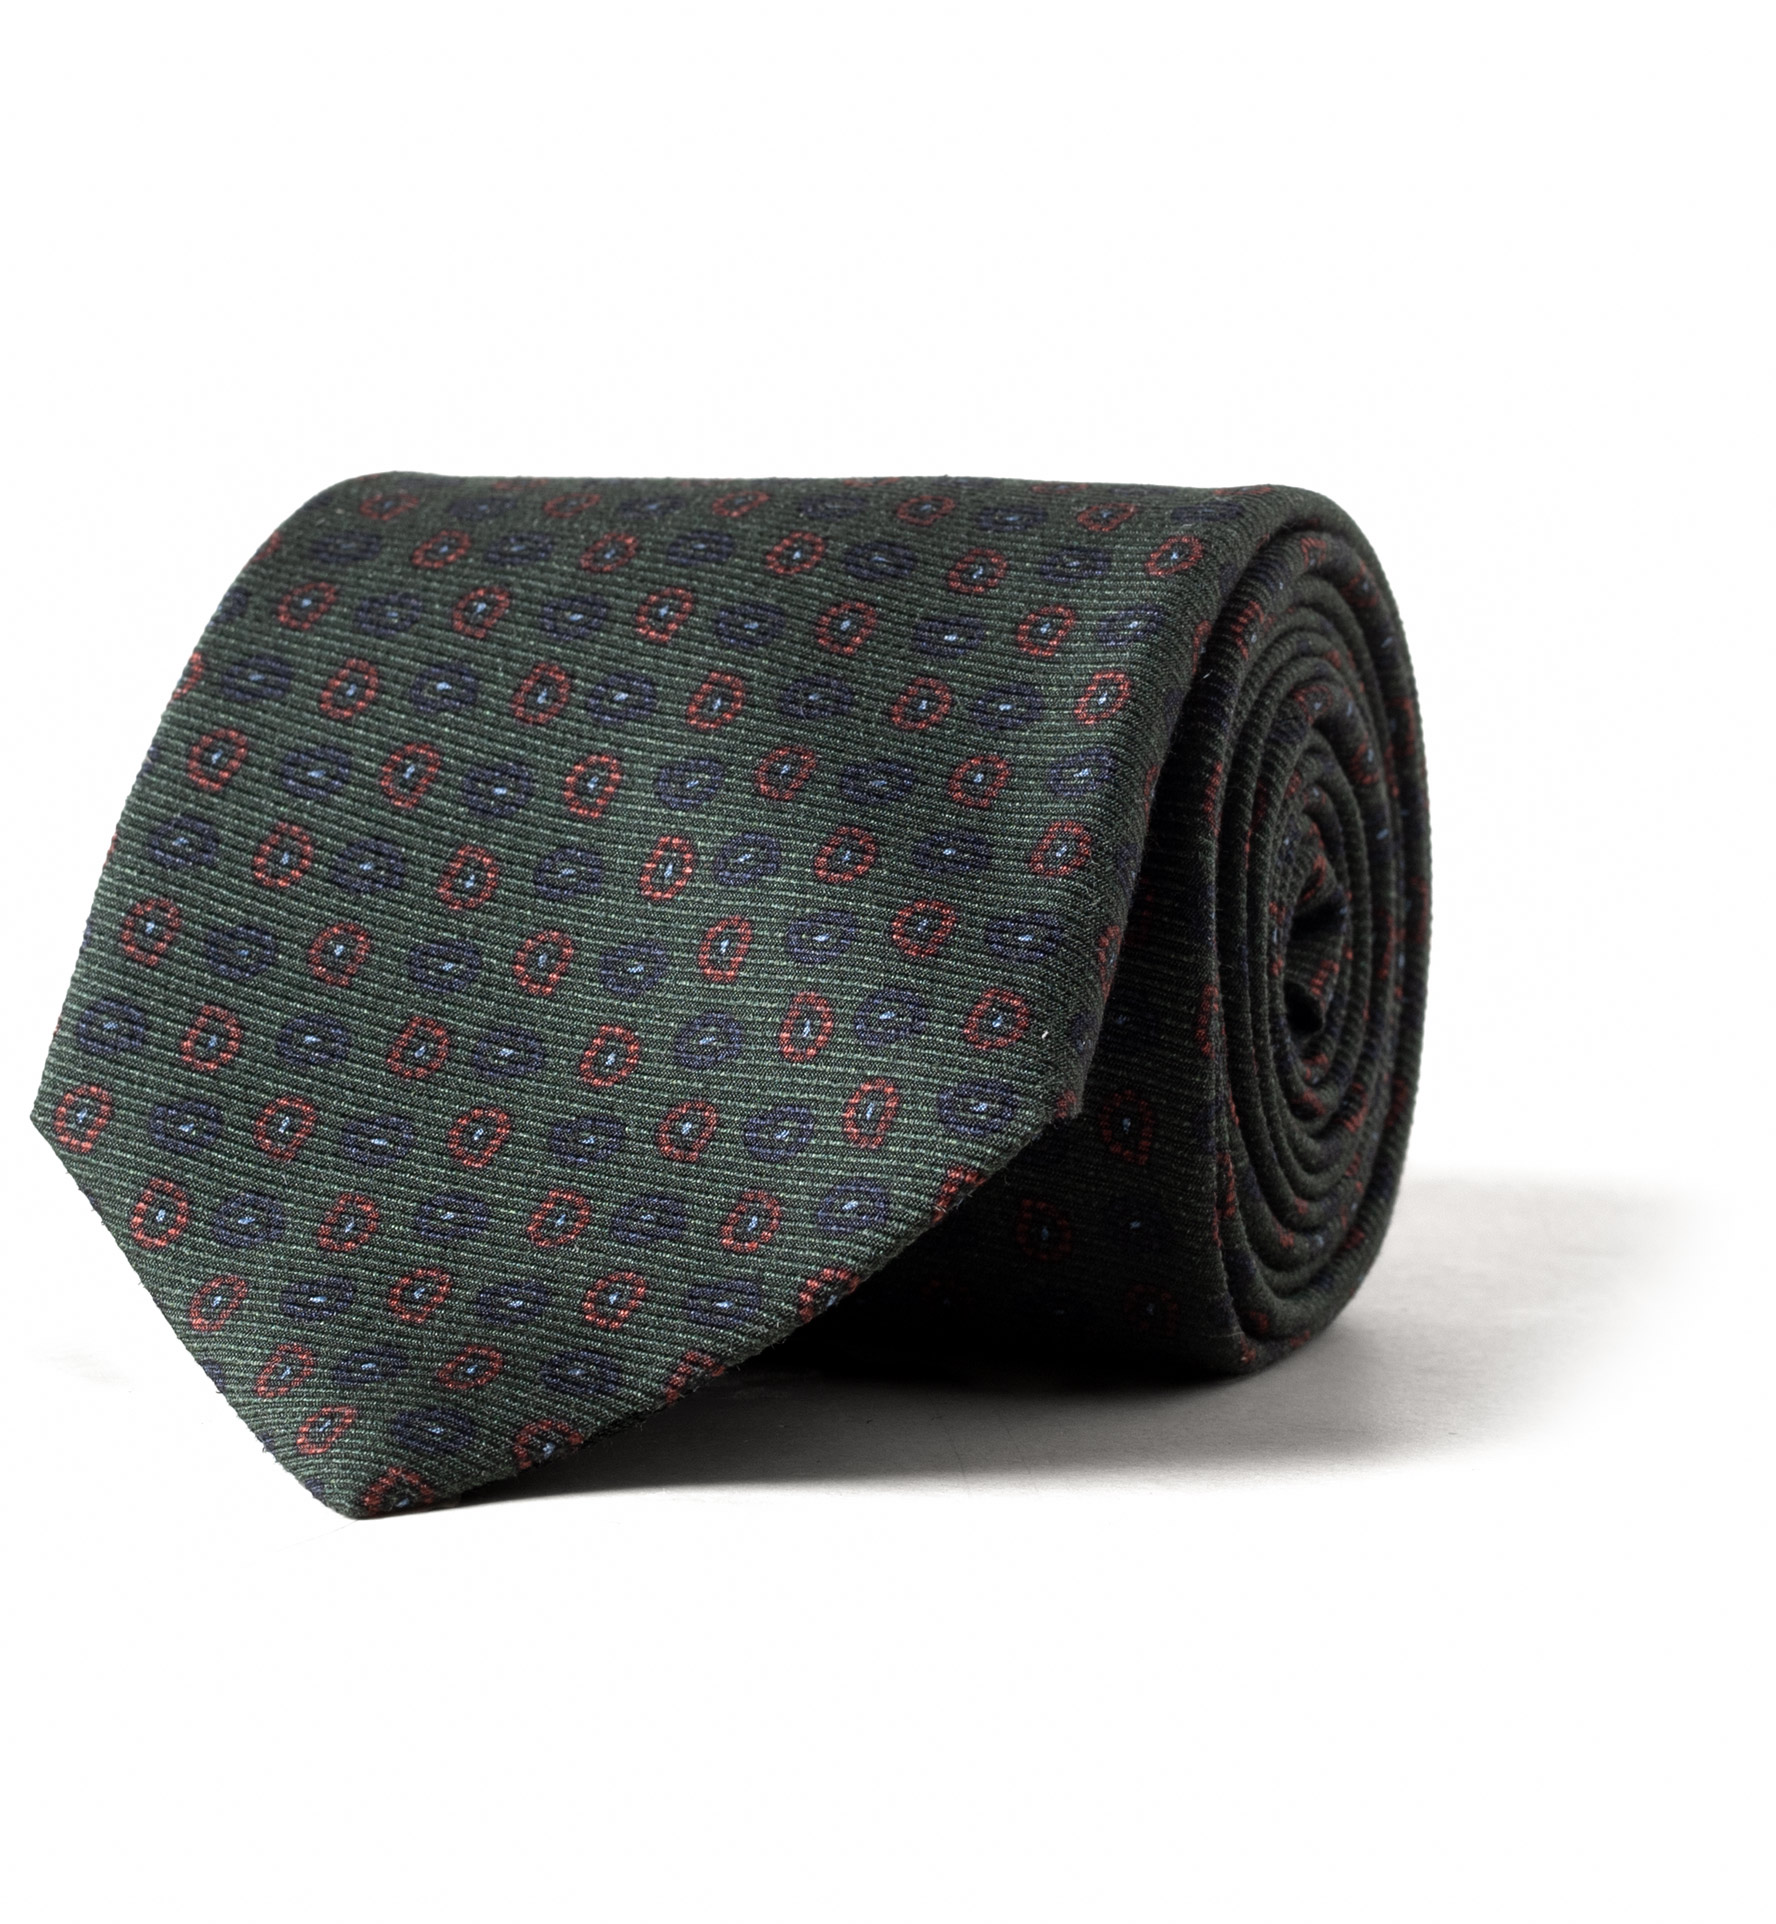 Zoom Image of Green and Blue Small Paisley Print Tie